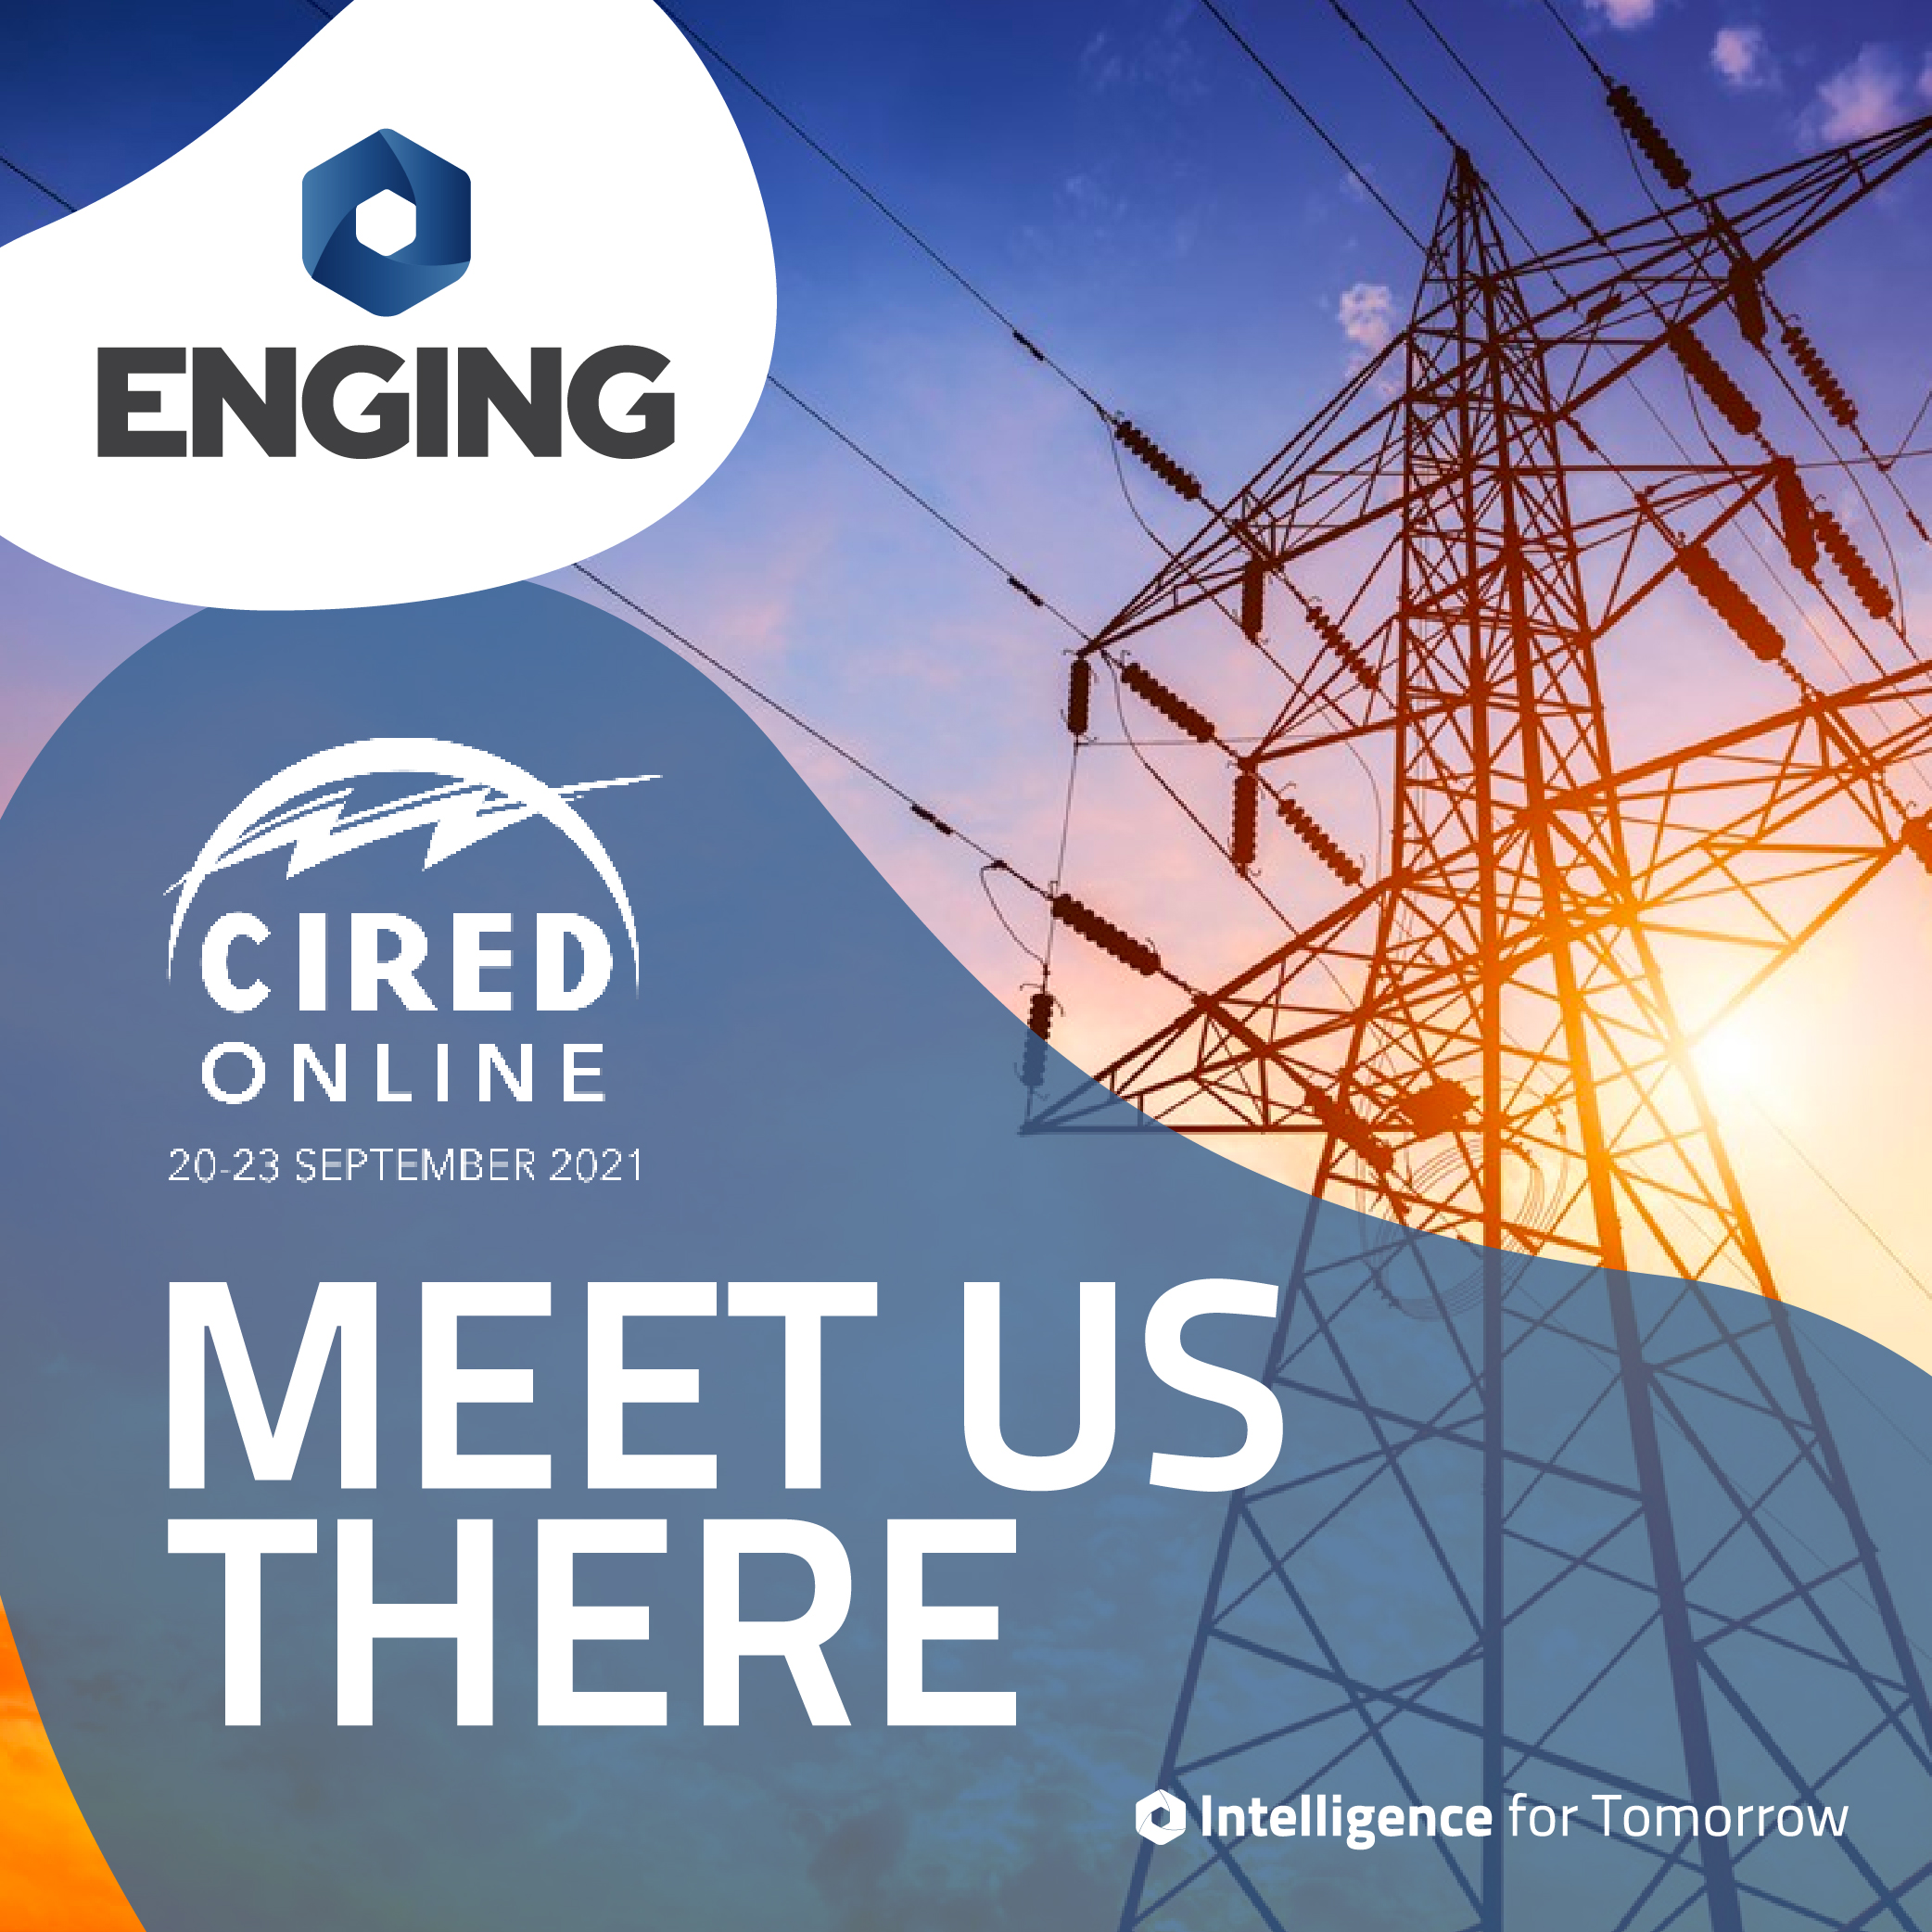 CIRED 2021 – 26th International Conference and Exhibition on Electricity Distribution